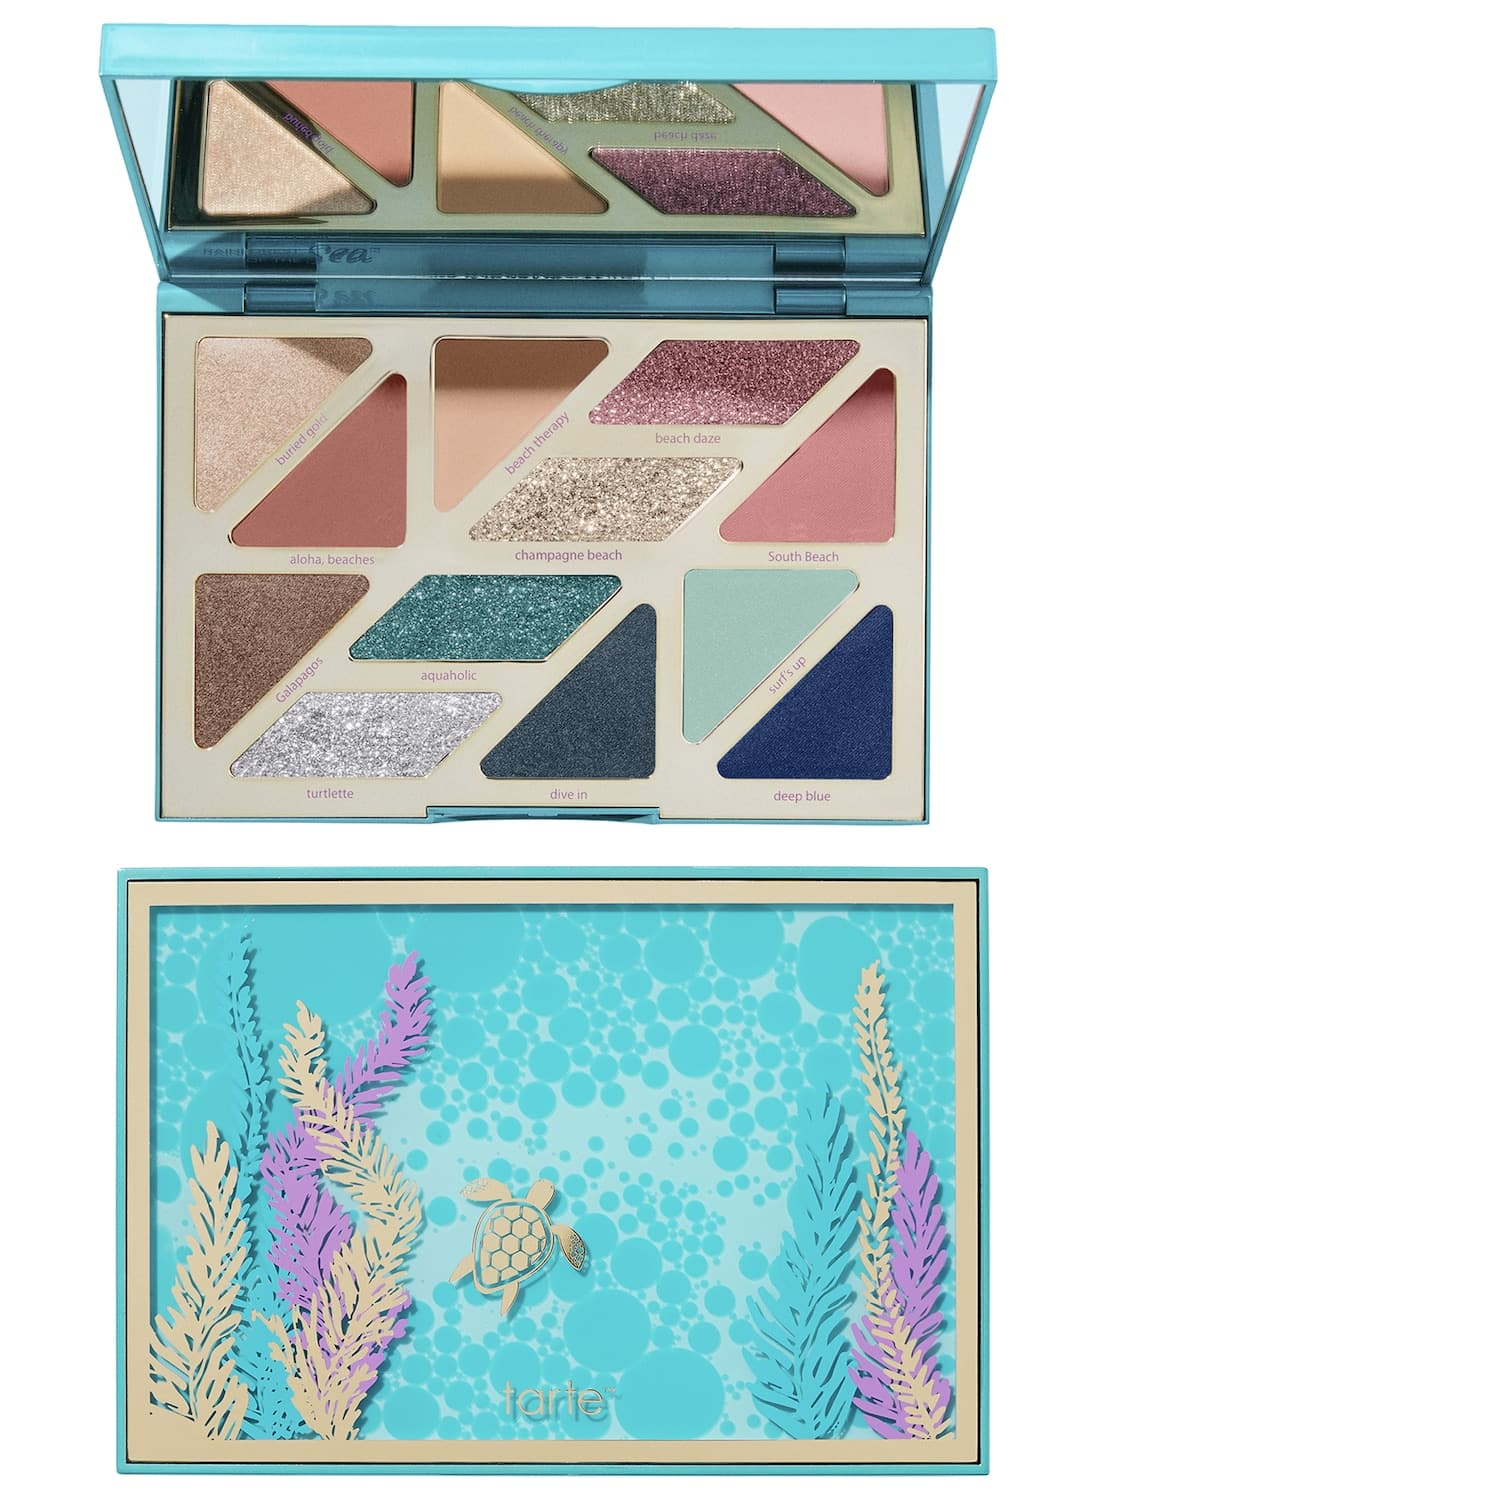 Tarte SEA High Tides & Good Vibes Eye Shadow Palette $19.50, Tarte Cosmic Maracuja Concentrated Face Balm $21 & More + Free Shipping